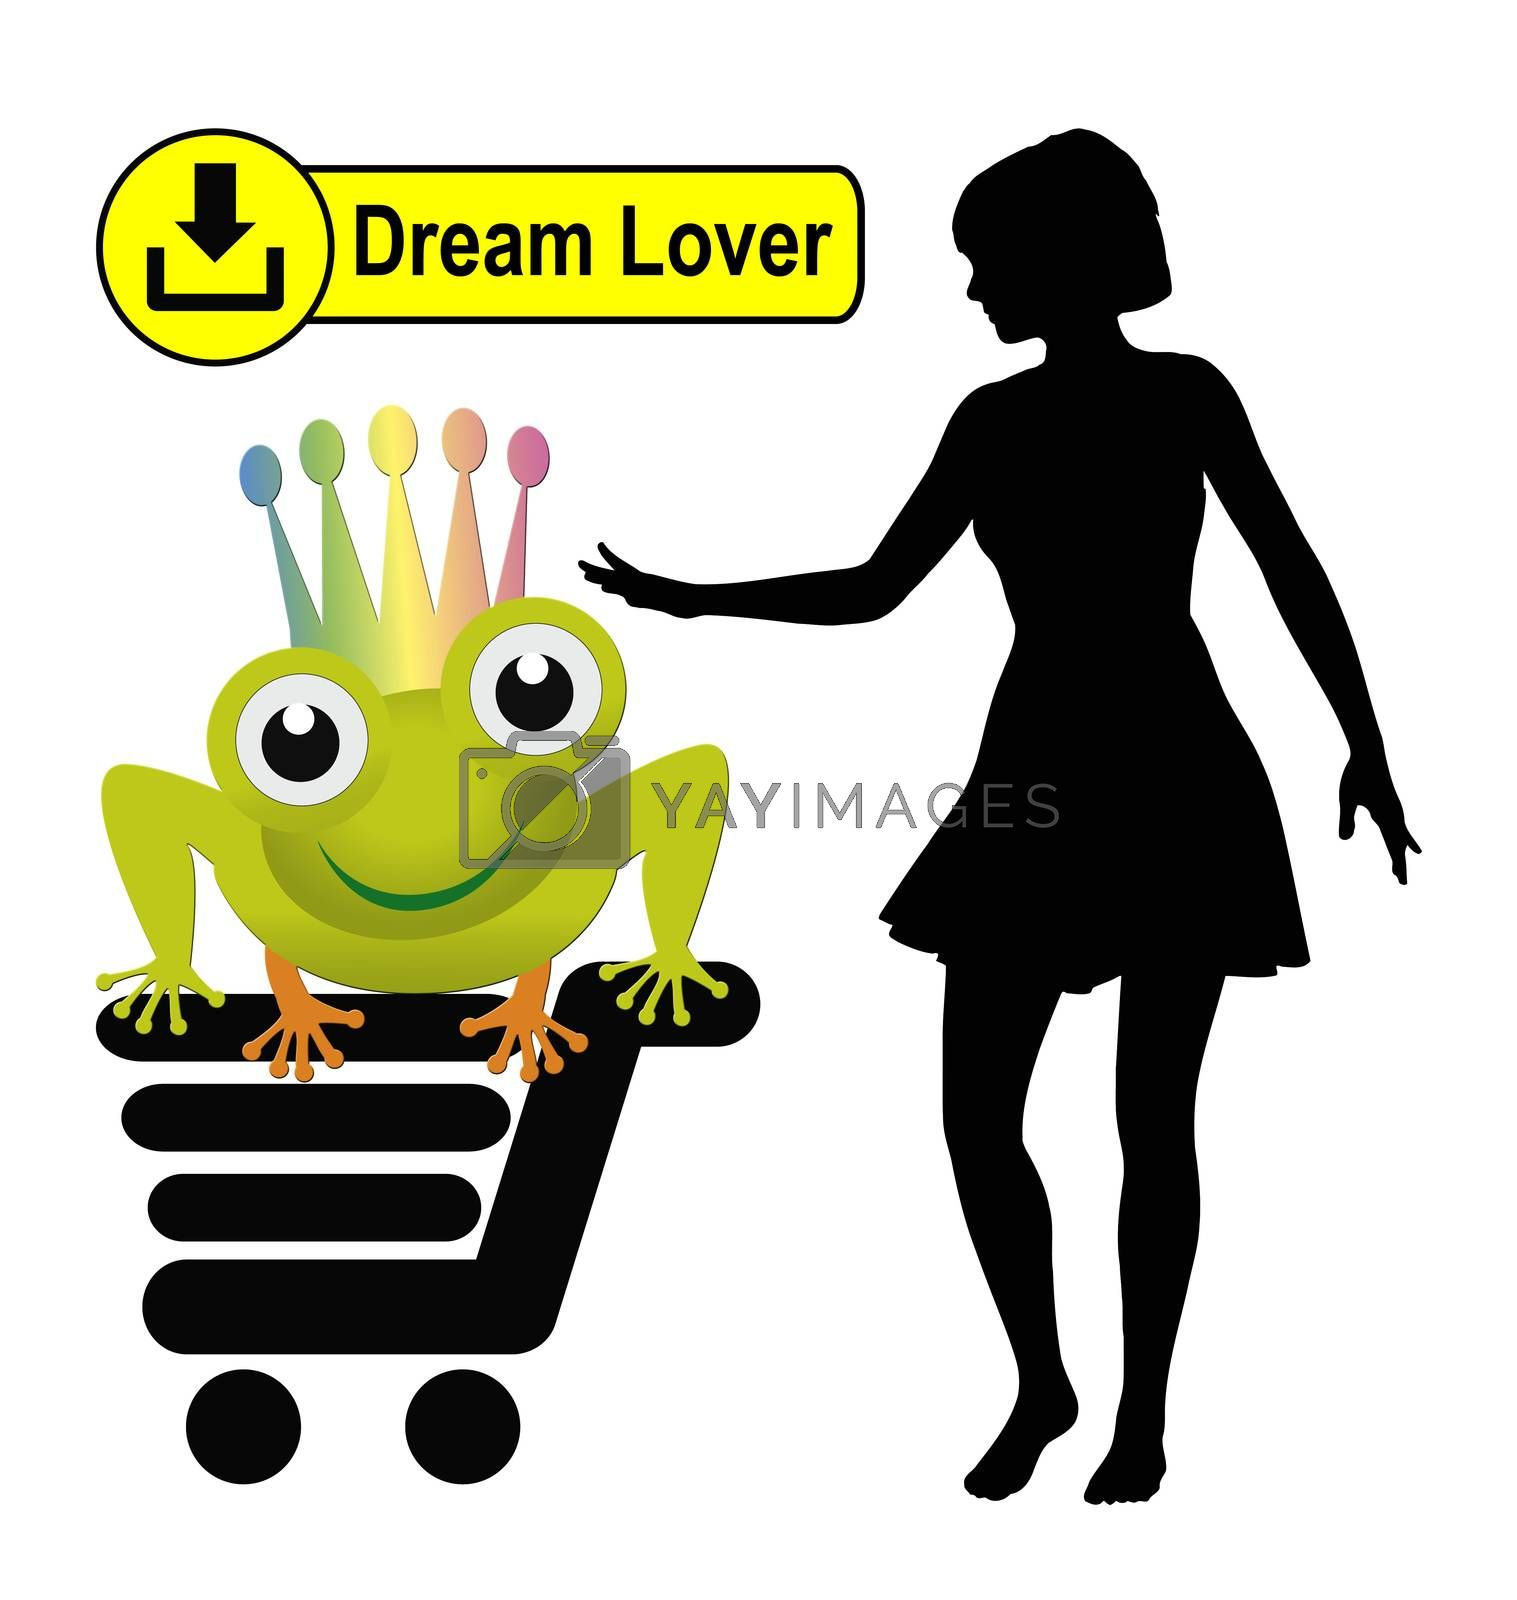 Dream Lover for Download by Bambara